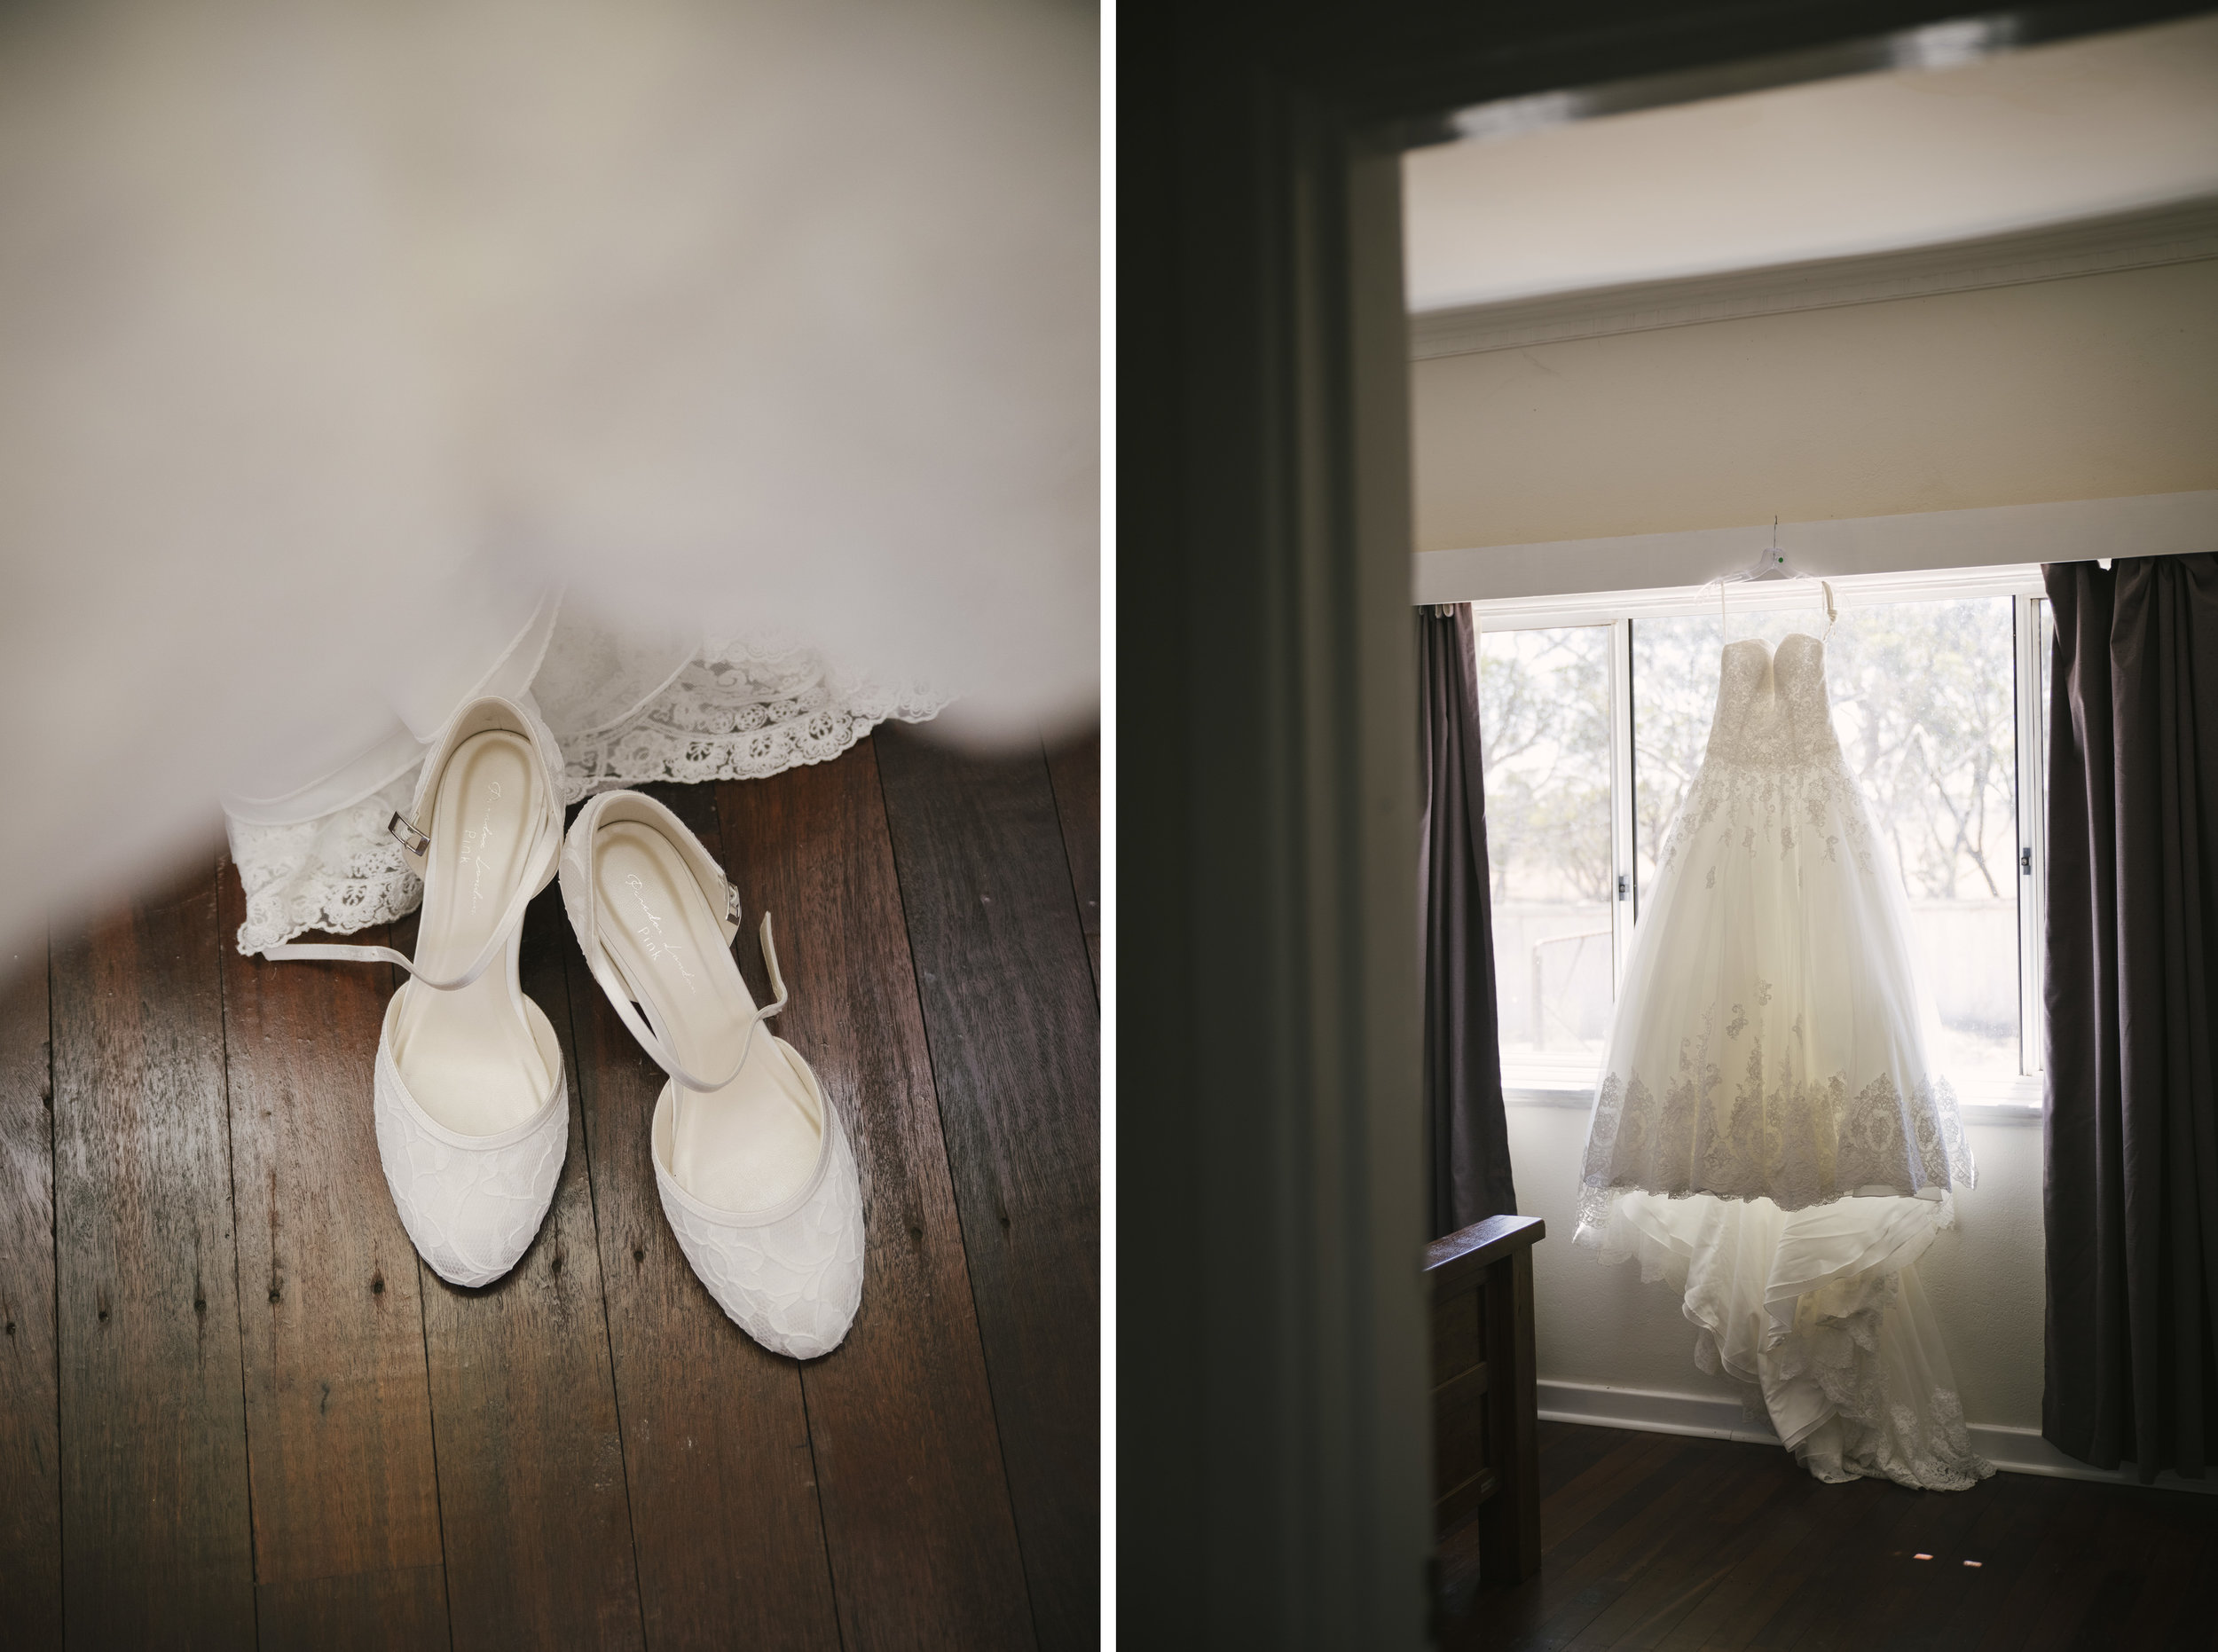 Wheatbelt Merredin Rustic Rural Farm Wedding (4and5).jpg